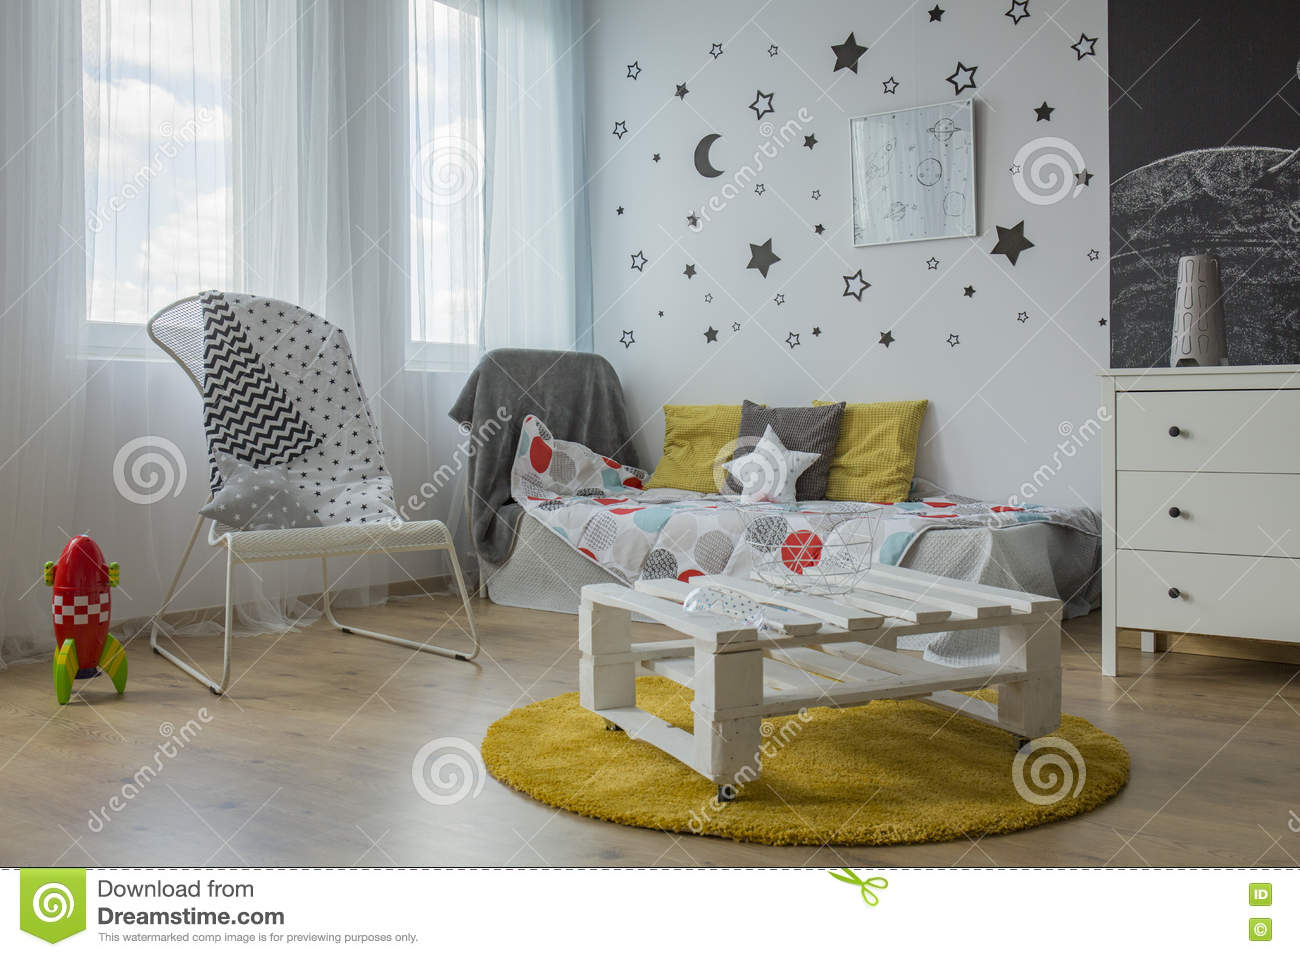 White, Grey And Yellow Bedroom Stock Photo - Image of white, modern ...